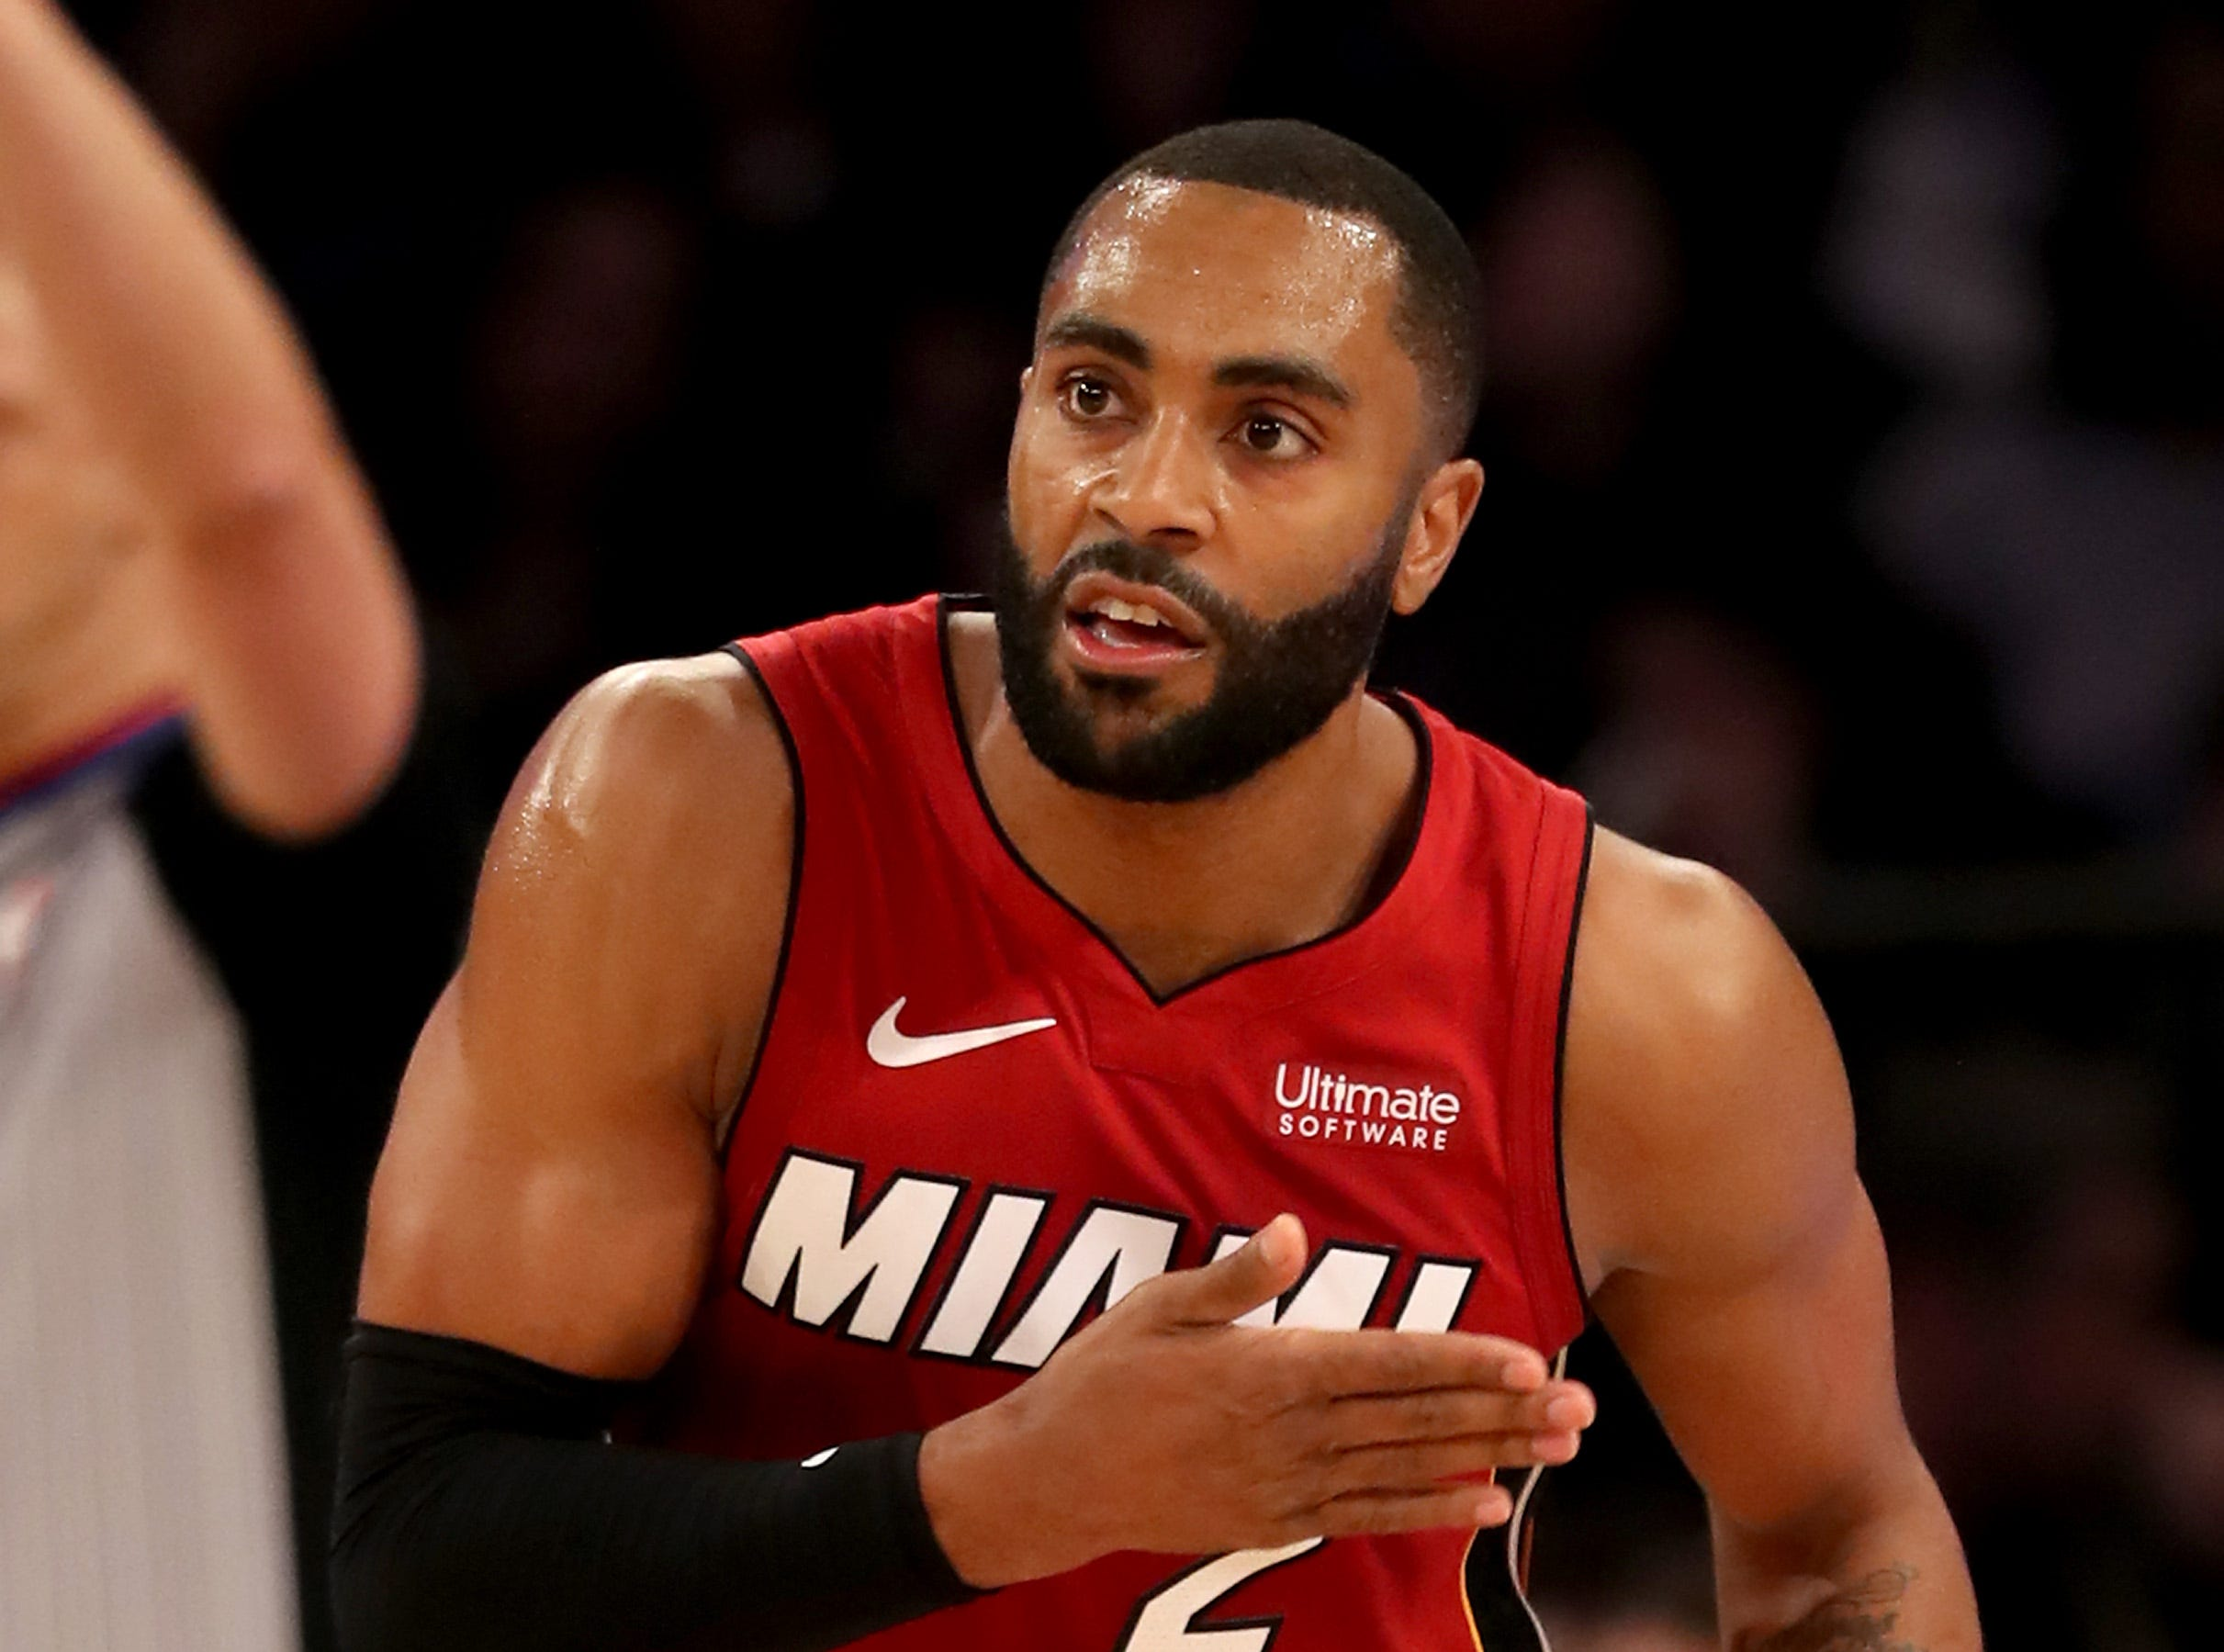 Wayne Ellington of the Miami Heat reacts in the third quarter against the New York Knicks on Jan. 27, 2019.